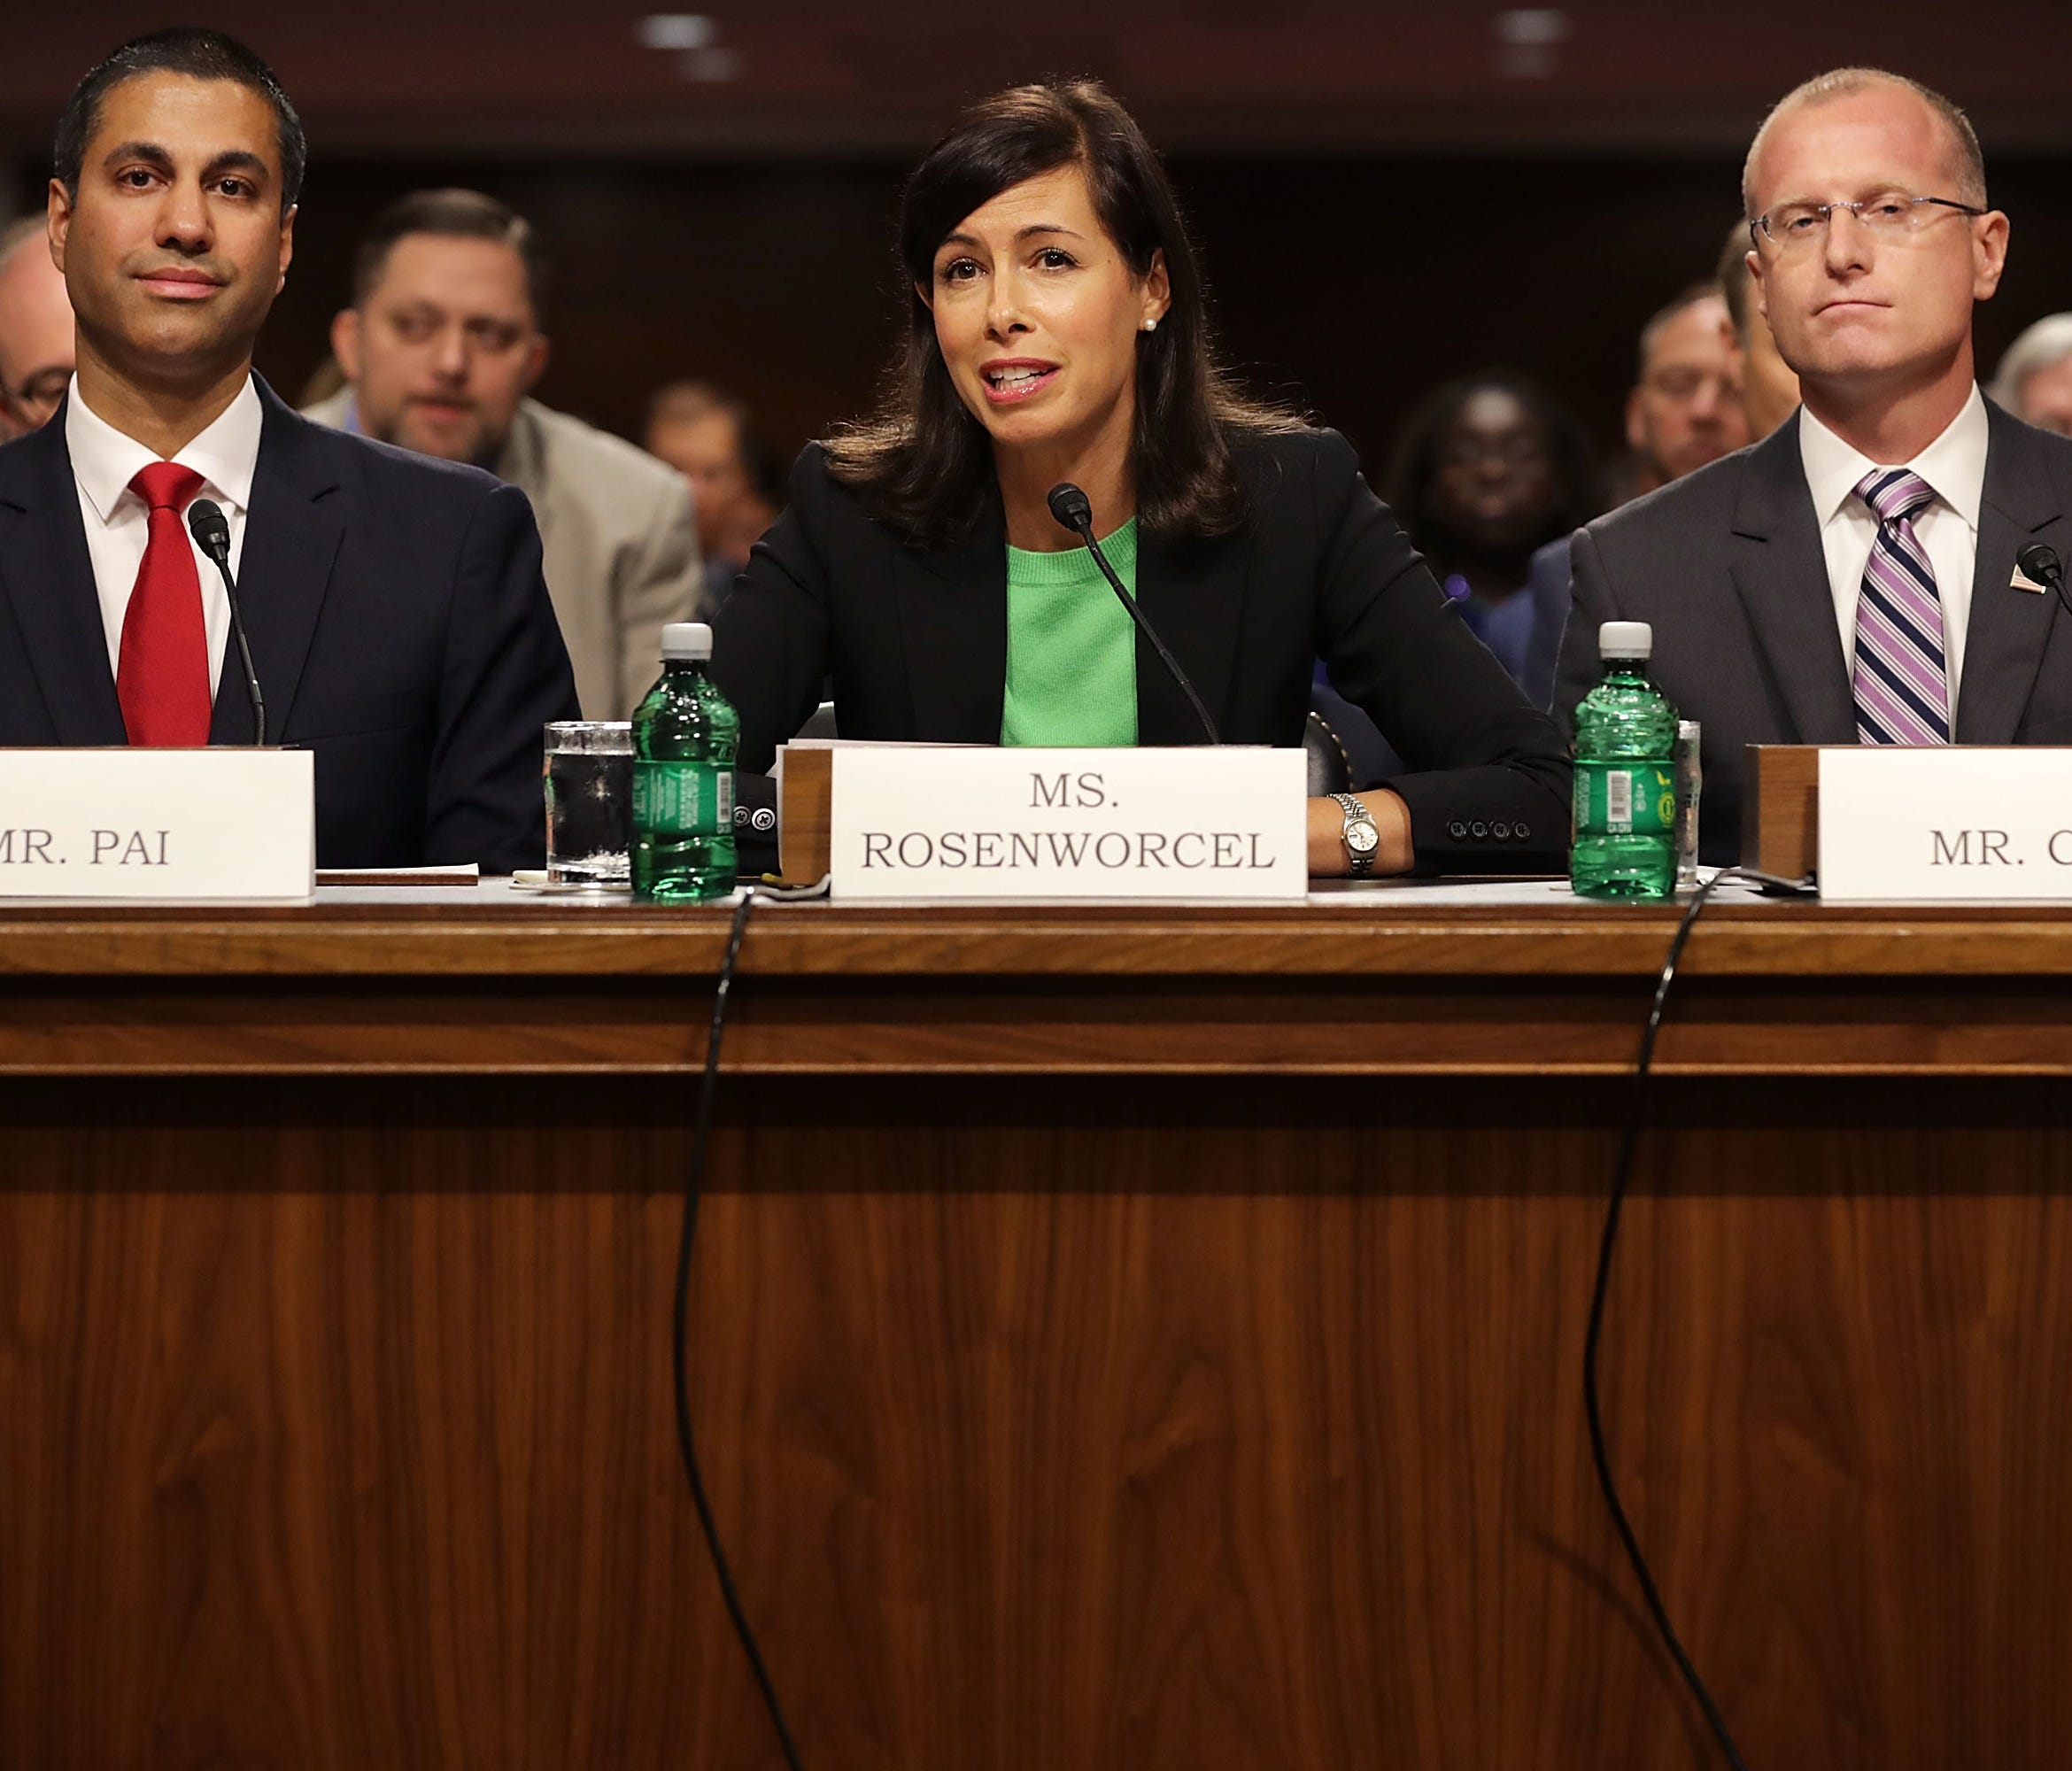 Federal Communications Commission Chairman Ajit Pai and nominees Jessica Rosenworcel and Brendan Carr, left to right, prepare to testify before the Senate Commerce, Science and Transportation Committee during their confirmation hearing July 19, 2017